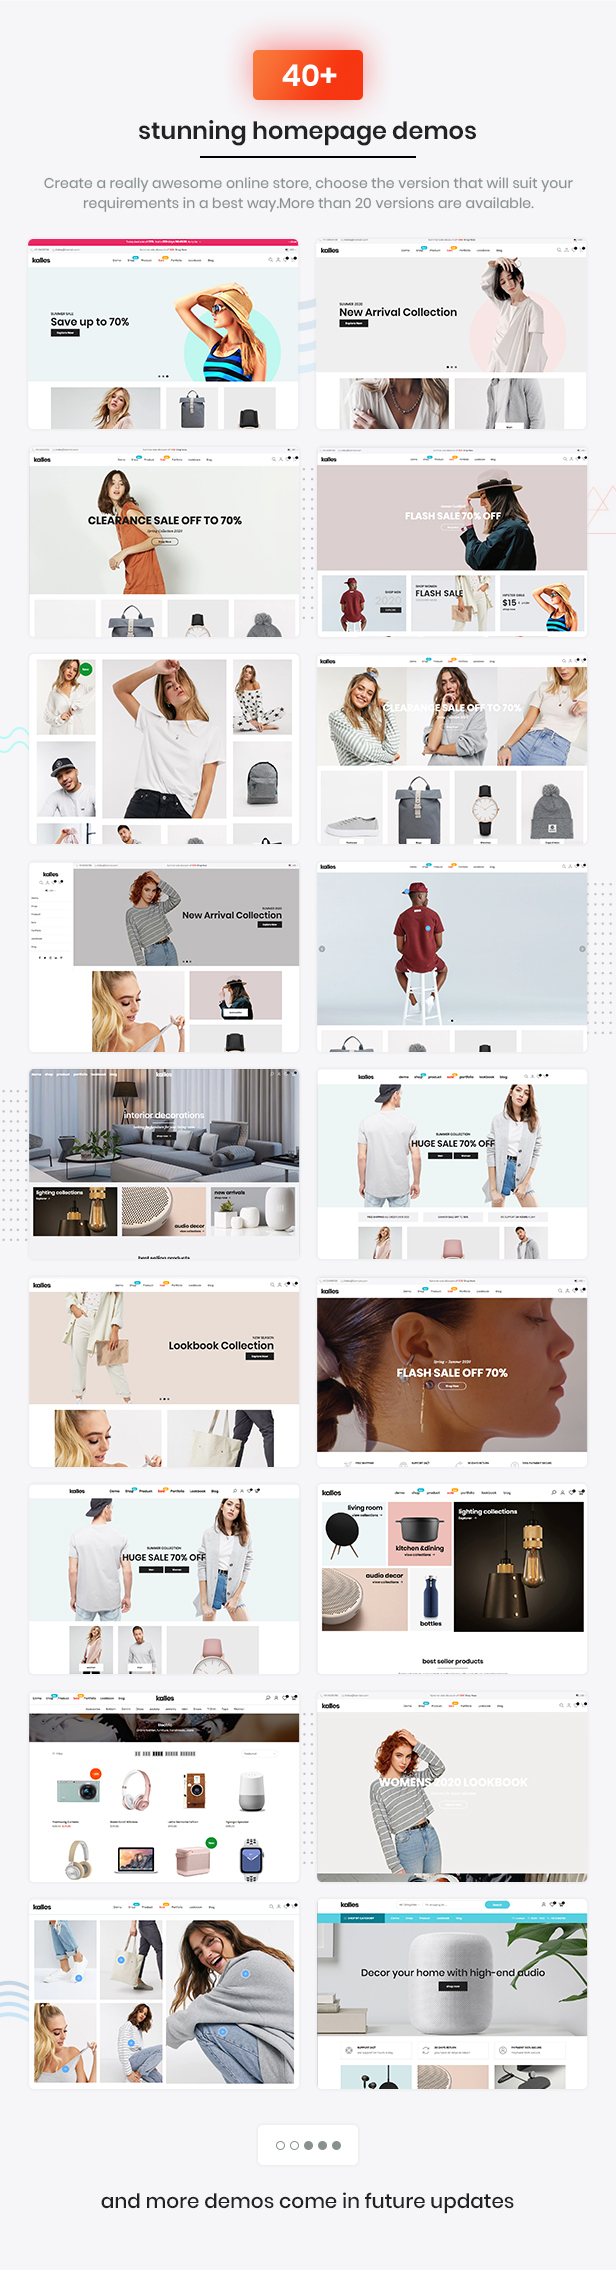 Kalles supported 20+ awesome demos, the best Shopify theme